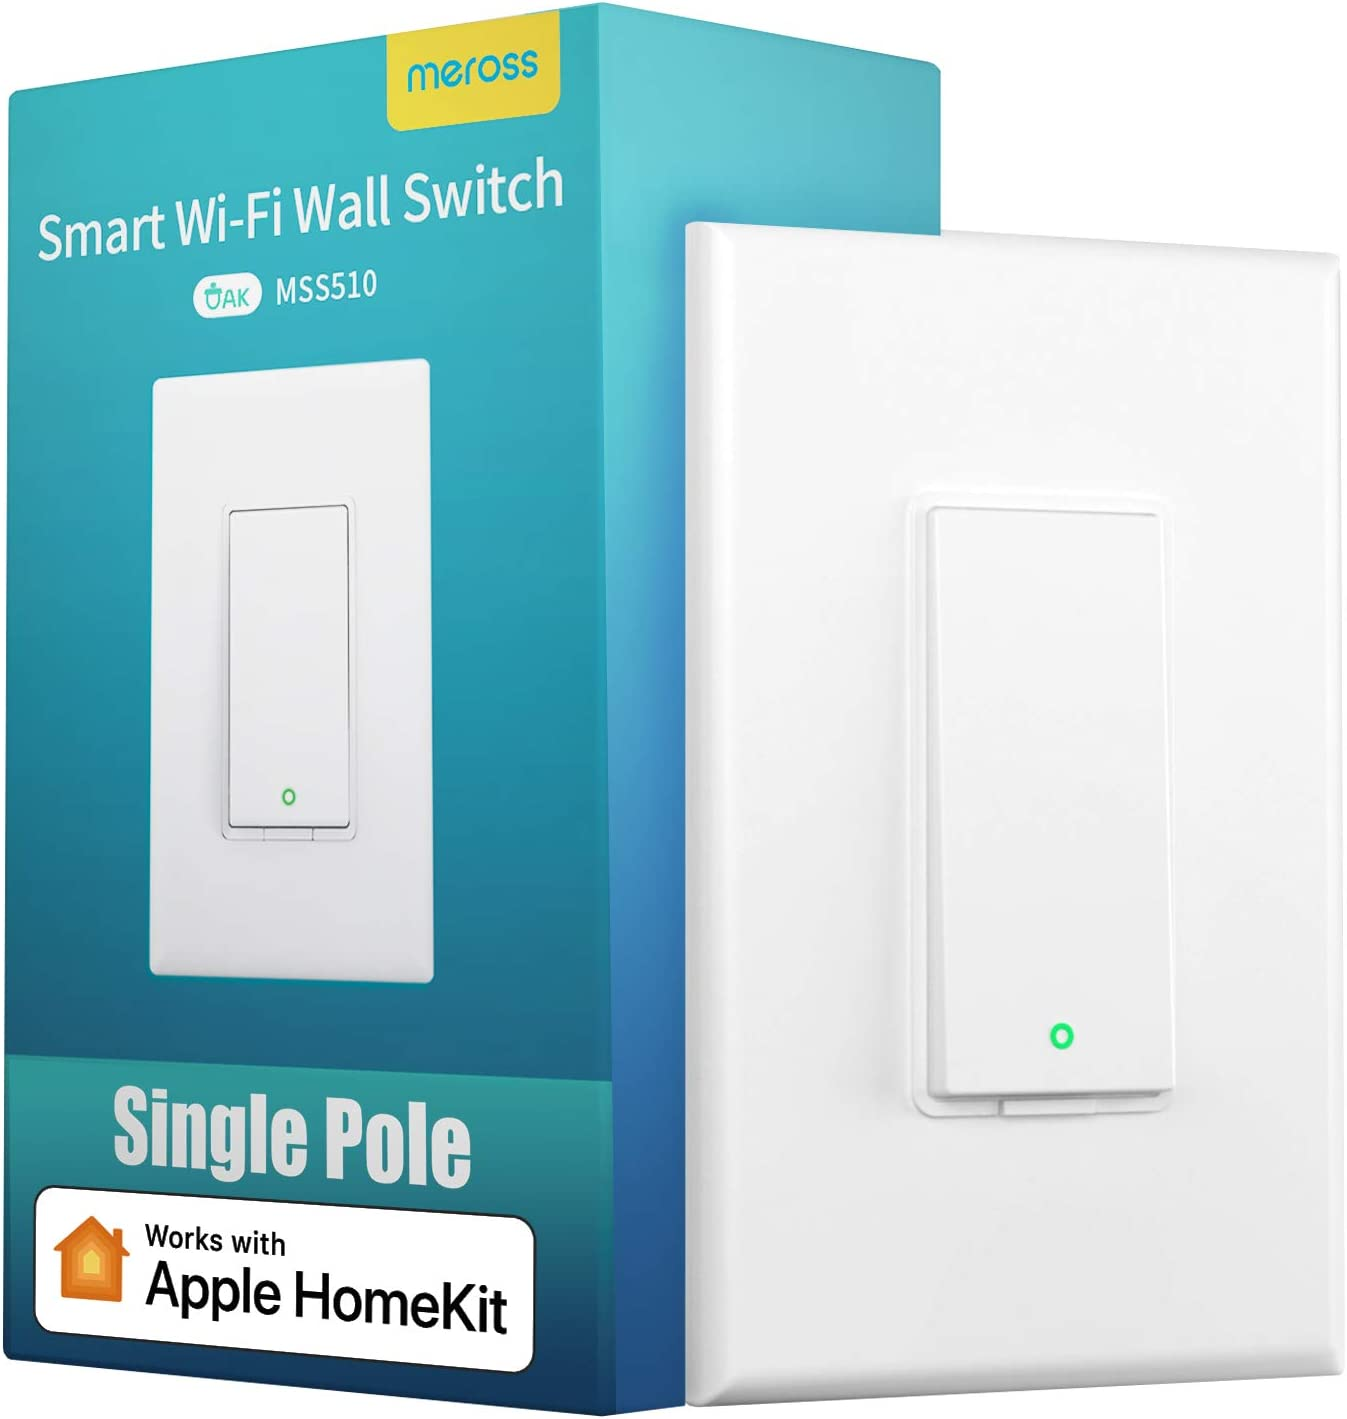 meross Smart Light Switch Works with Apple Homekit, Siri, Alexa and Google Assistant, 2.4Ghz WiFi Light Switch, Neutral Wire Required, Single Pole, Remote Control, Schedule, No Hub Needed, 1 Pack